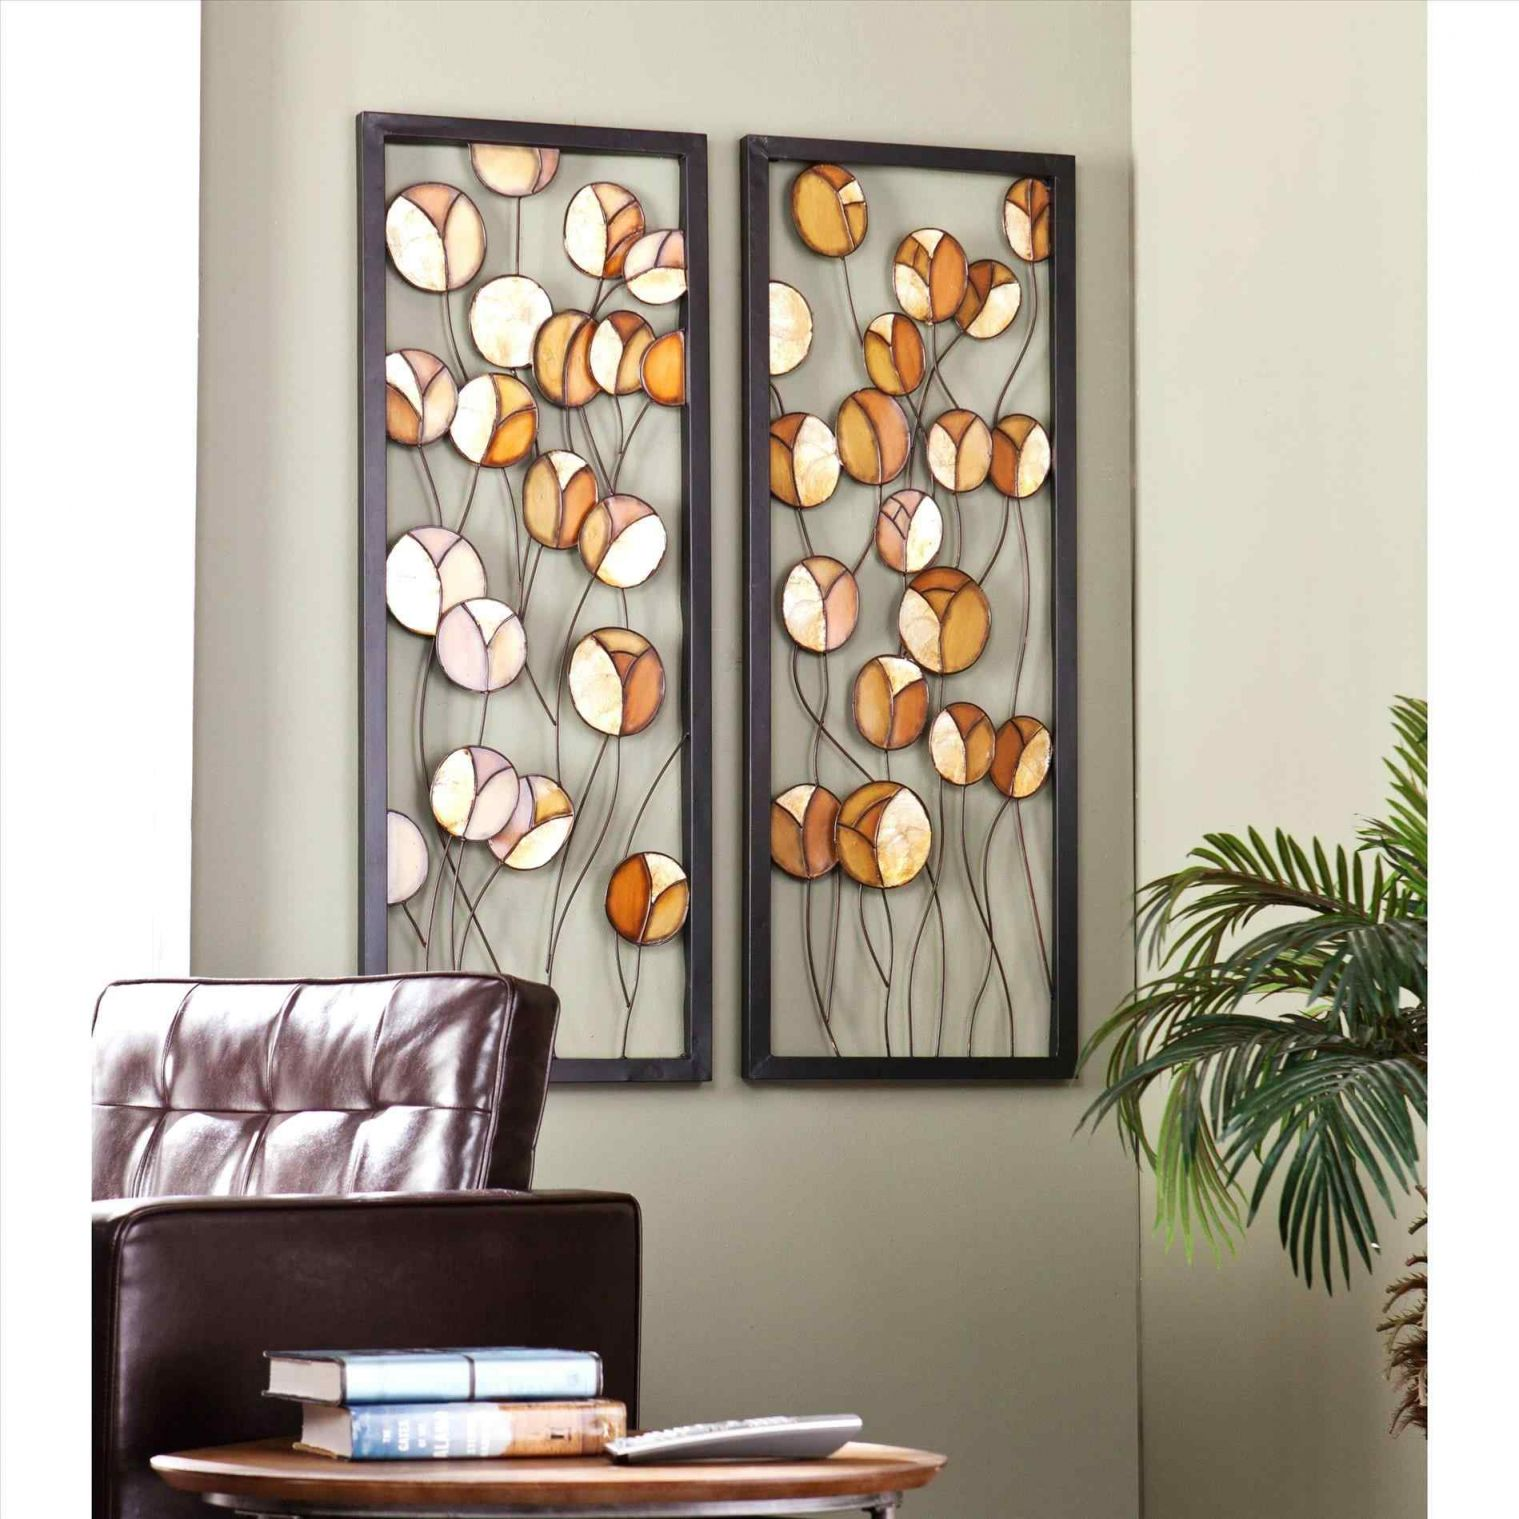 Awesome diy wall art ideas for living room